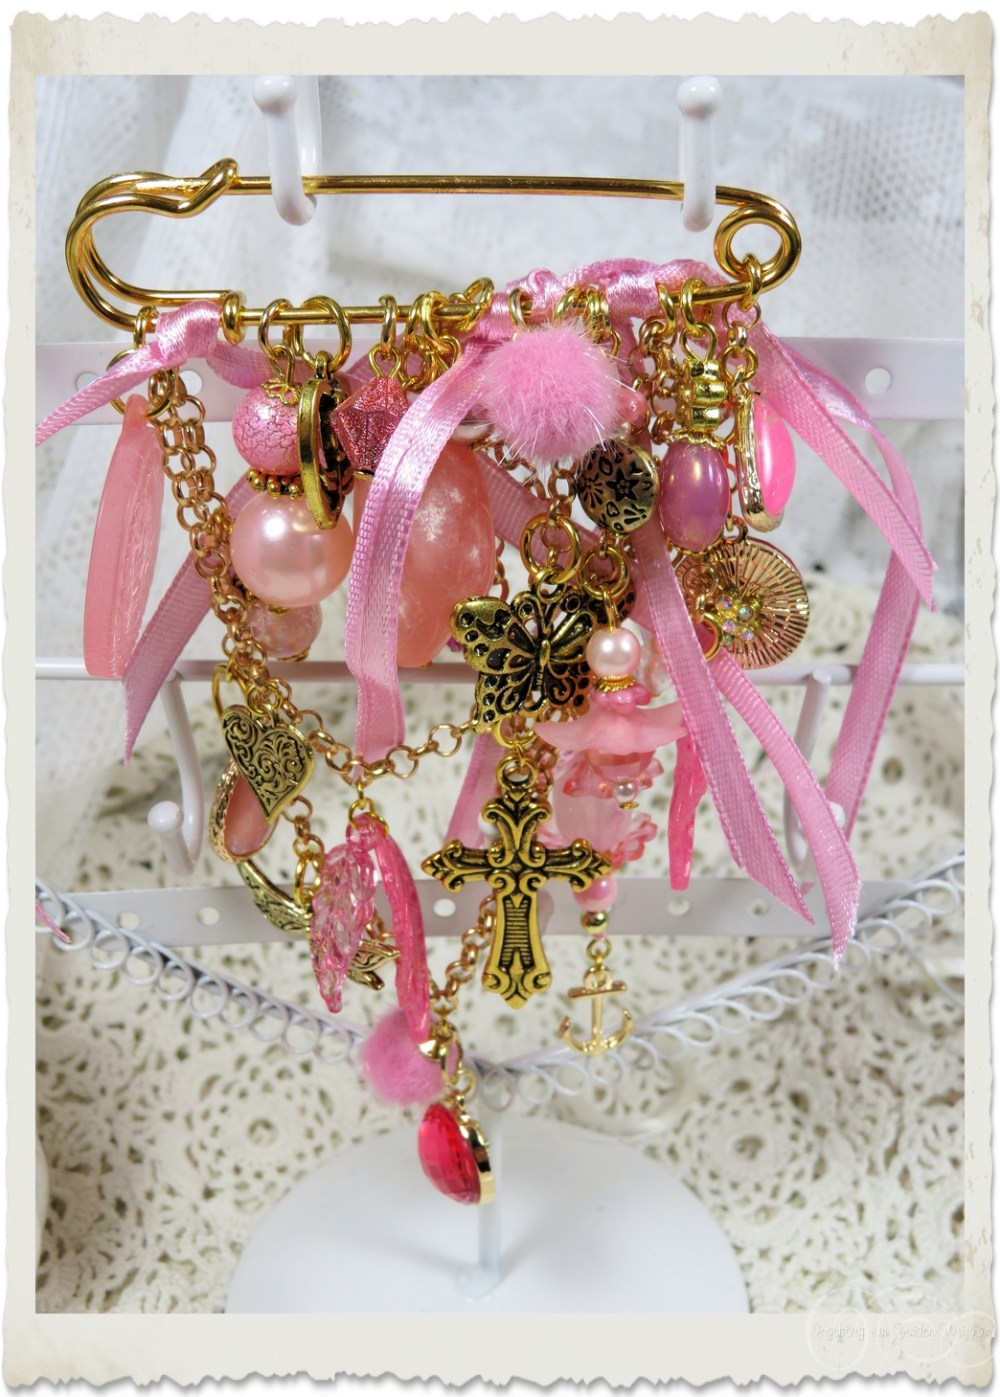 Pink gold brooch with charms and beaded dangles by Ingeborg van Zuiden